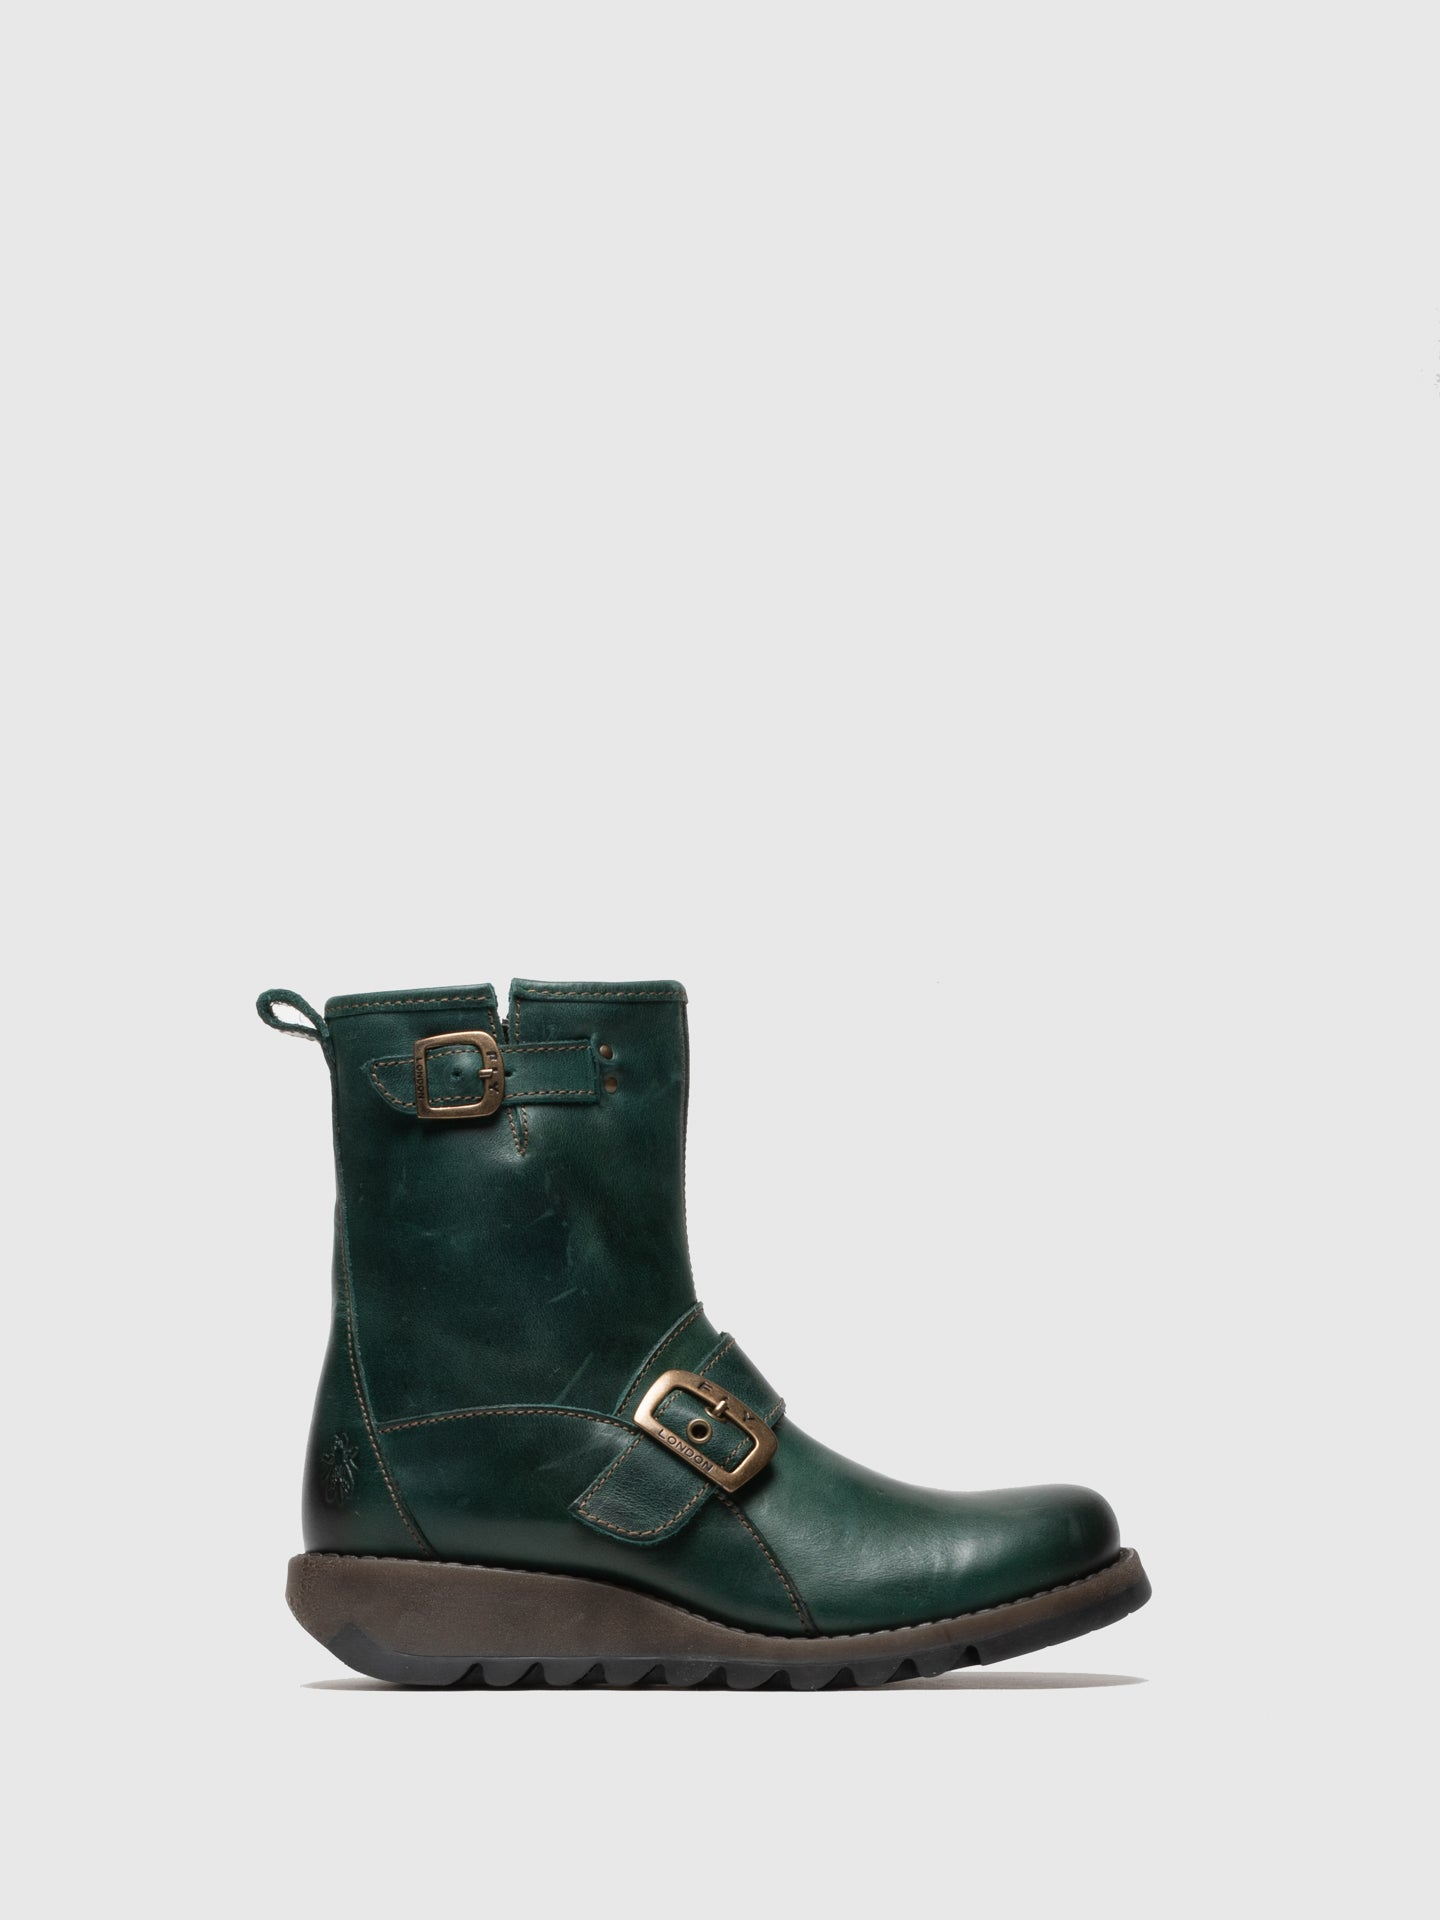 Fly London Green Buckle Ankle Boots